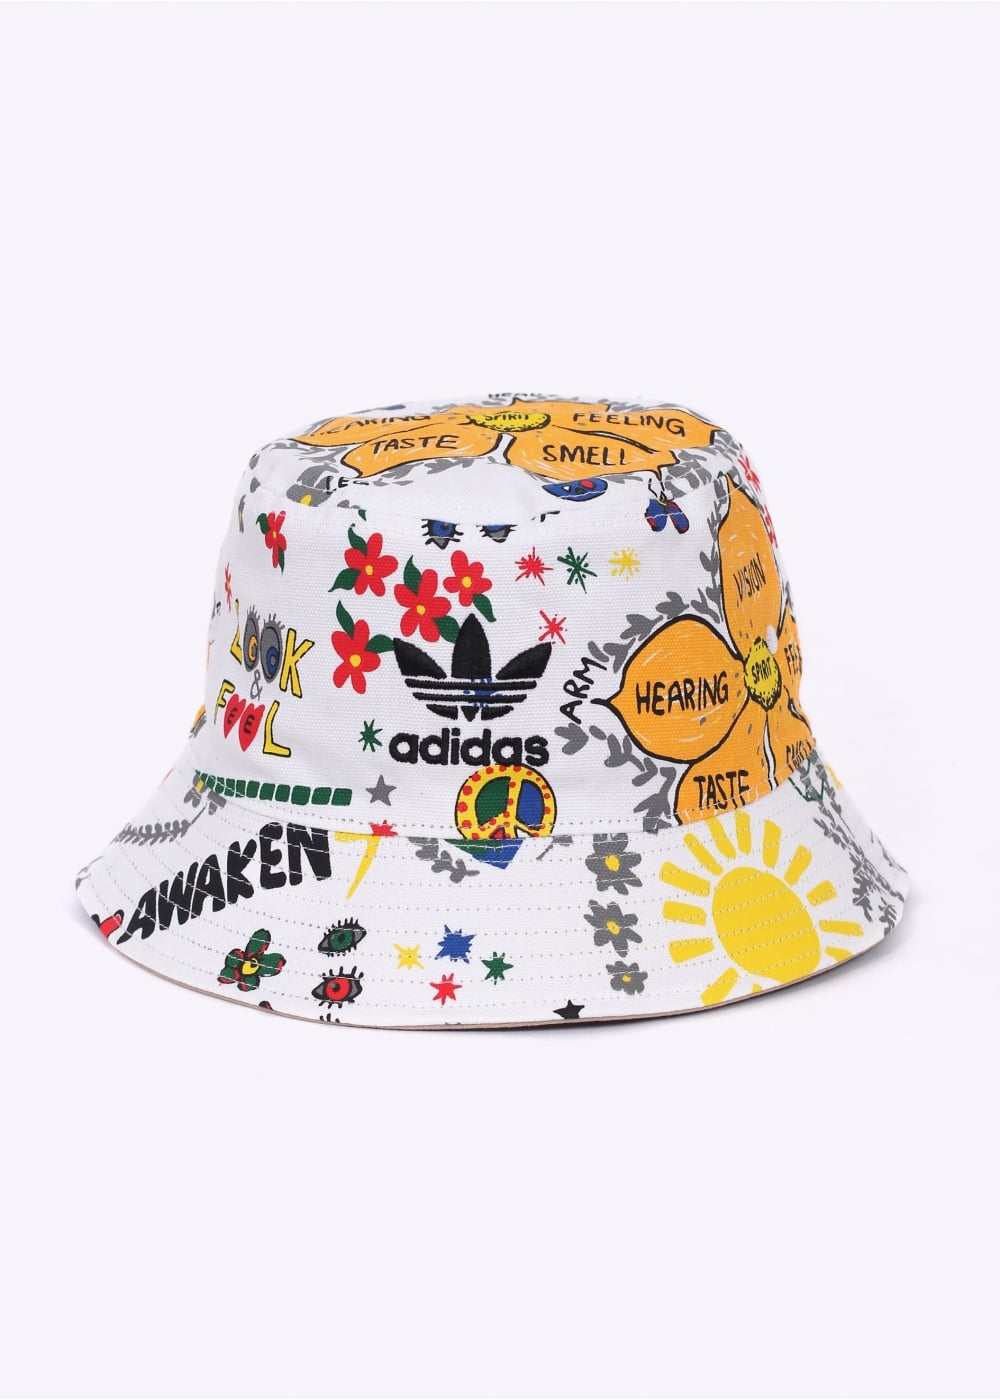 6b1427a4fe7 Adidas Originals Accessories x Pharrell Williams Artist Reversible ...